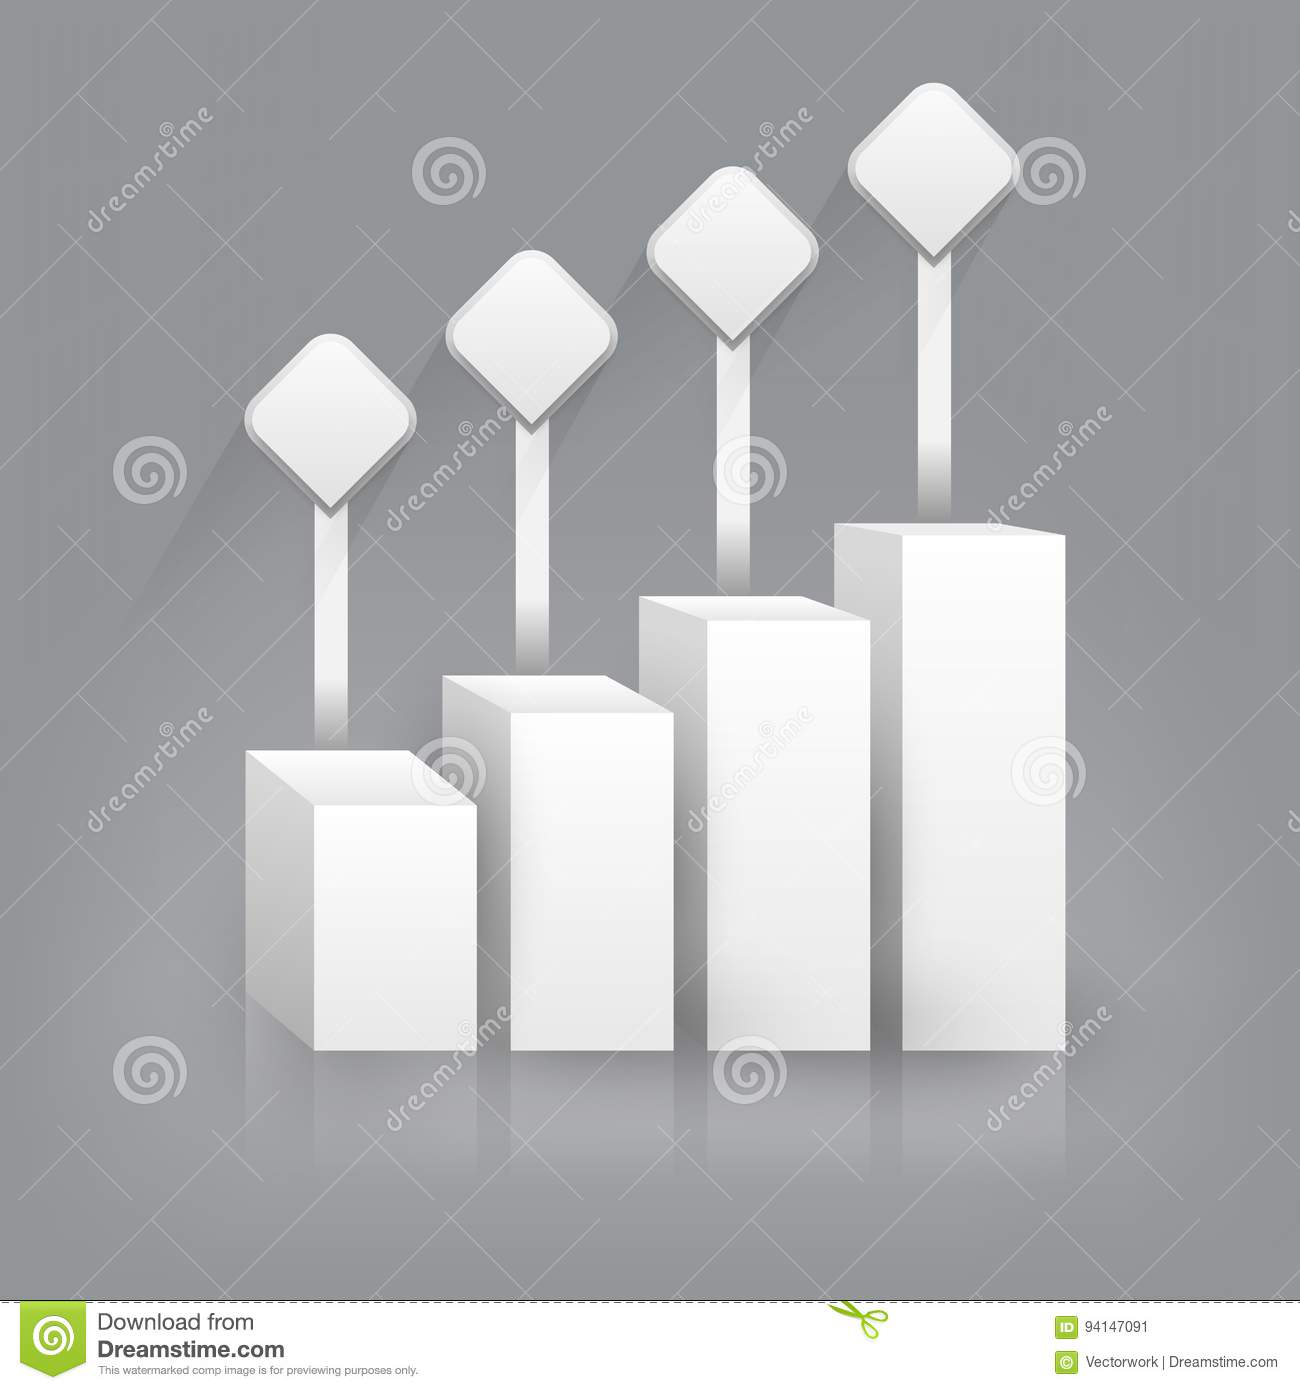 Business Bar Graph Blank Template Infographic Stock Vector